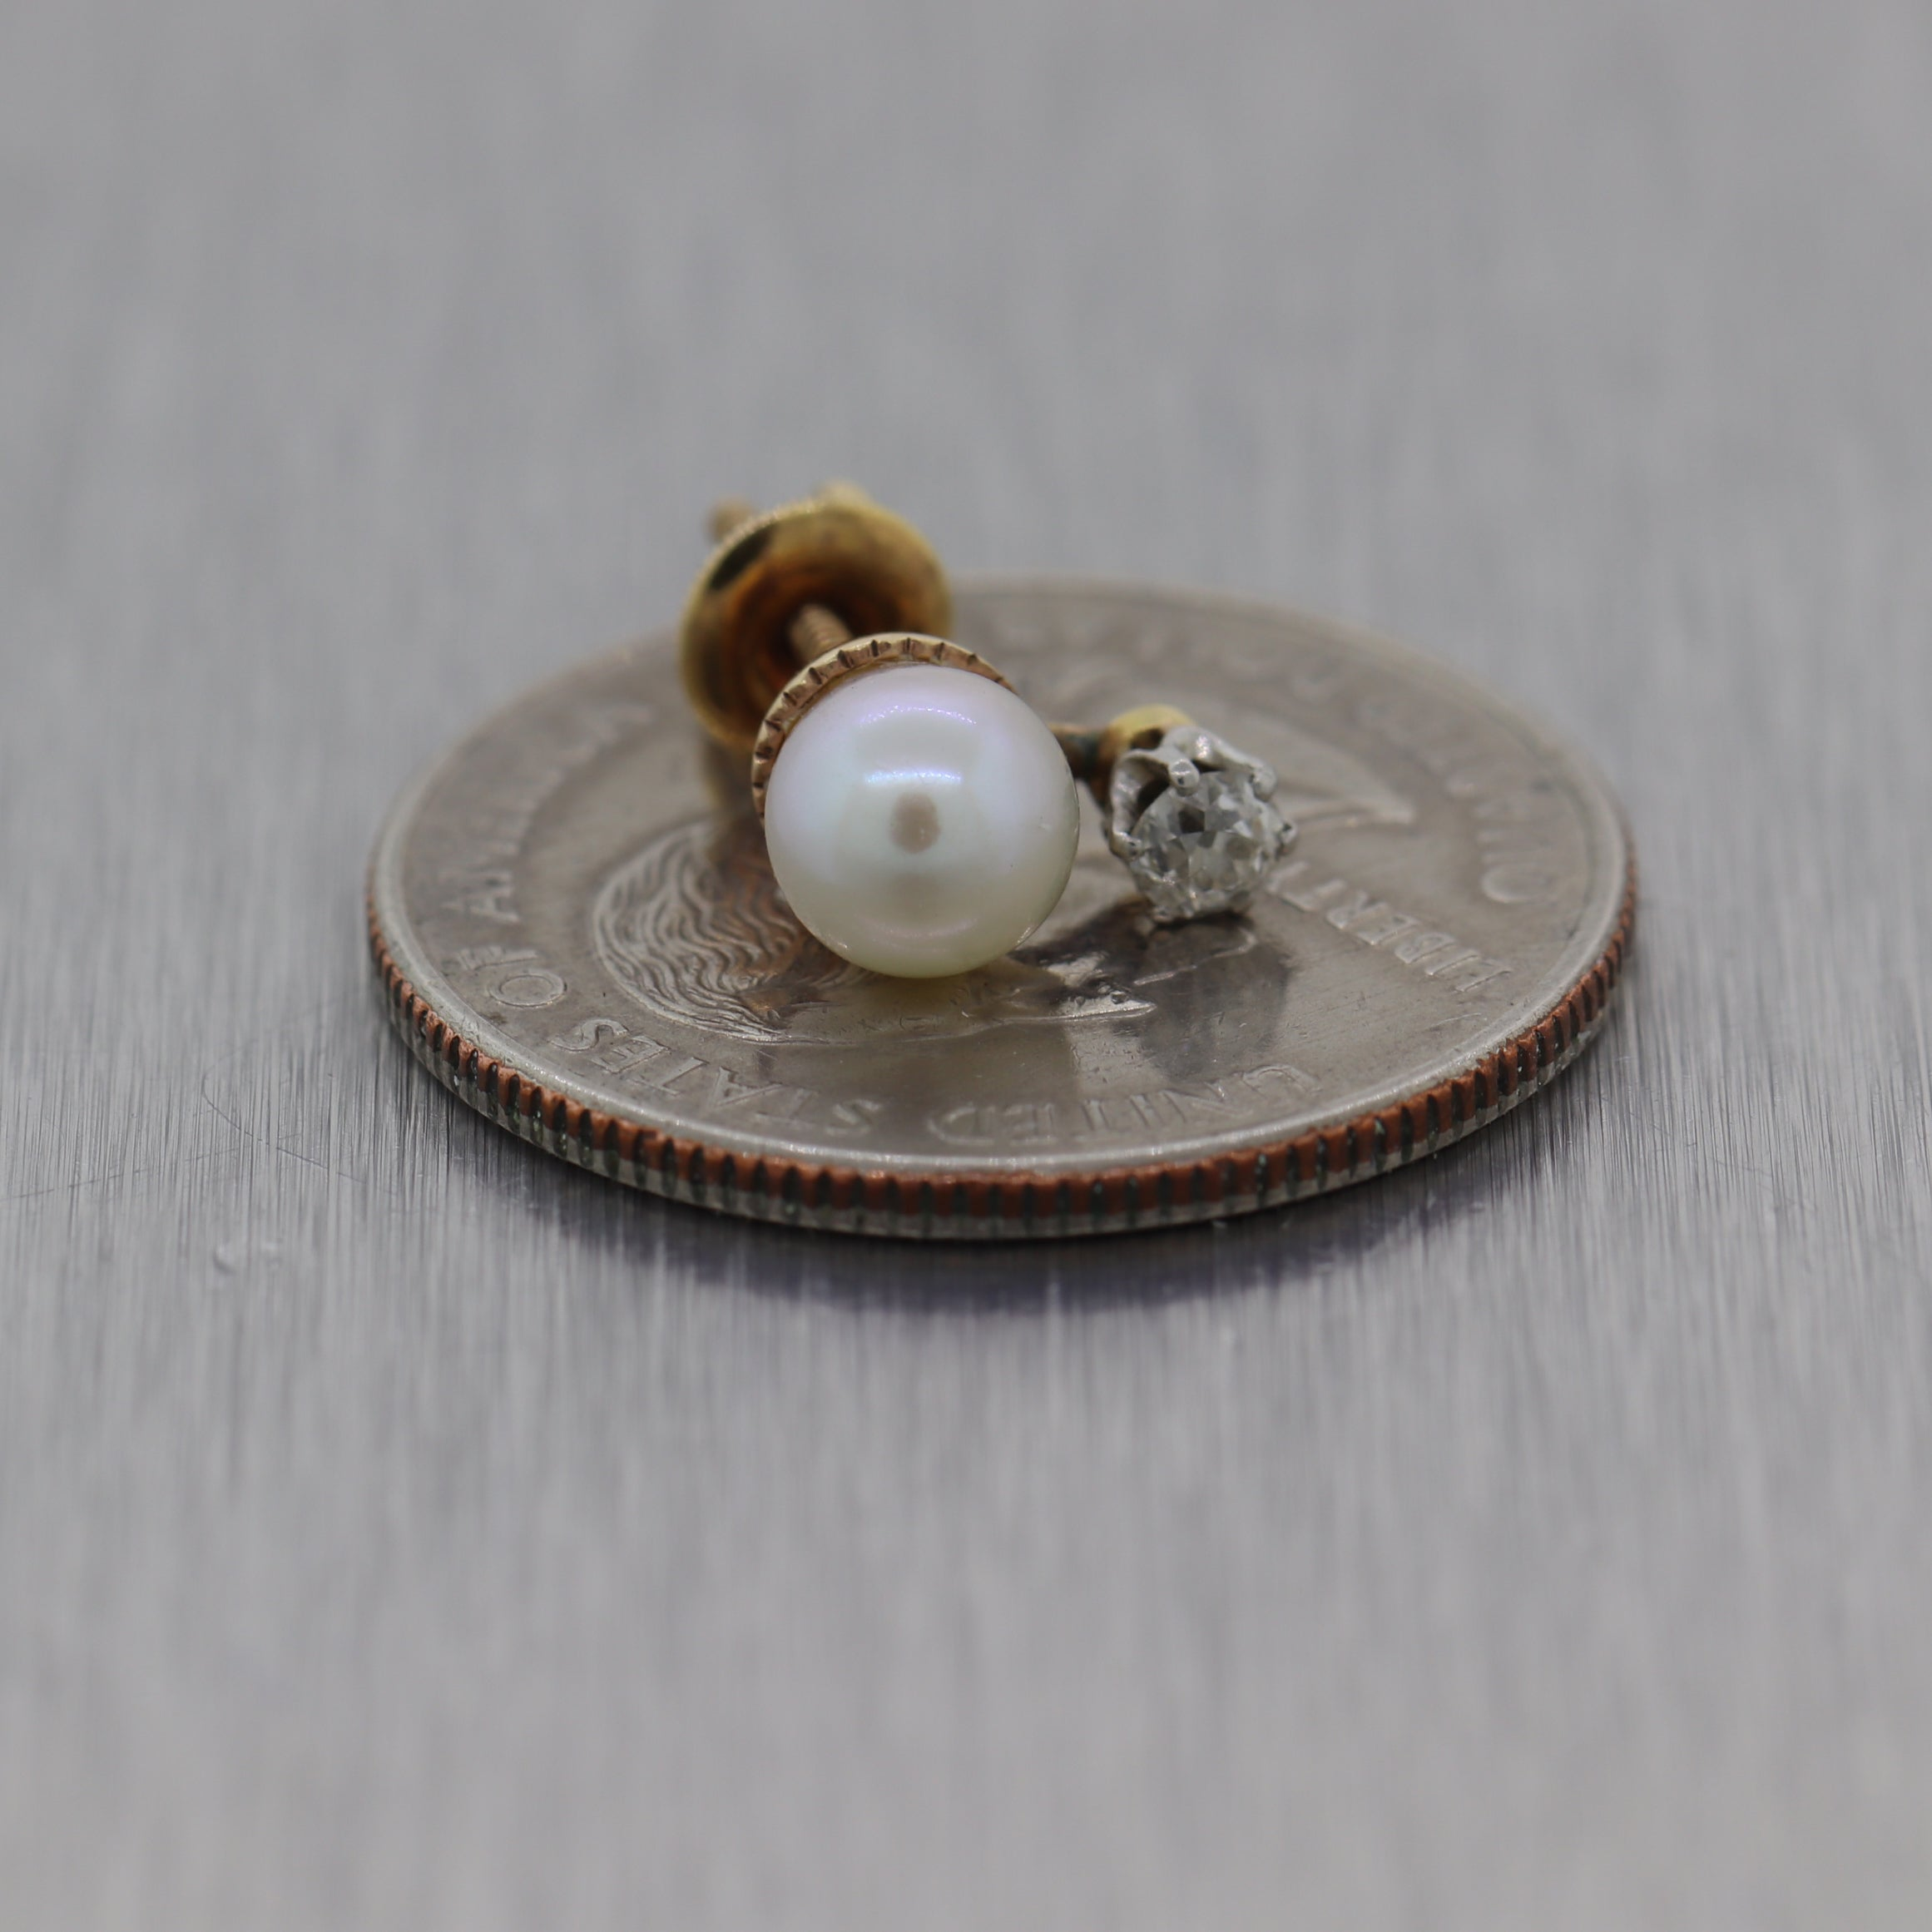 1890's Antique Victorian 14k White Gold 0.20ctw Diamond & Pearl Stud Earrings